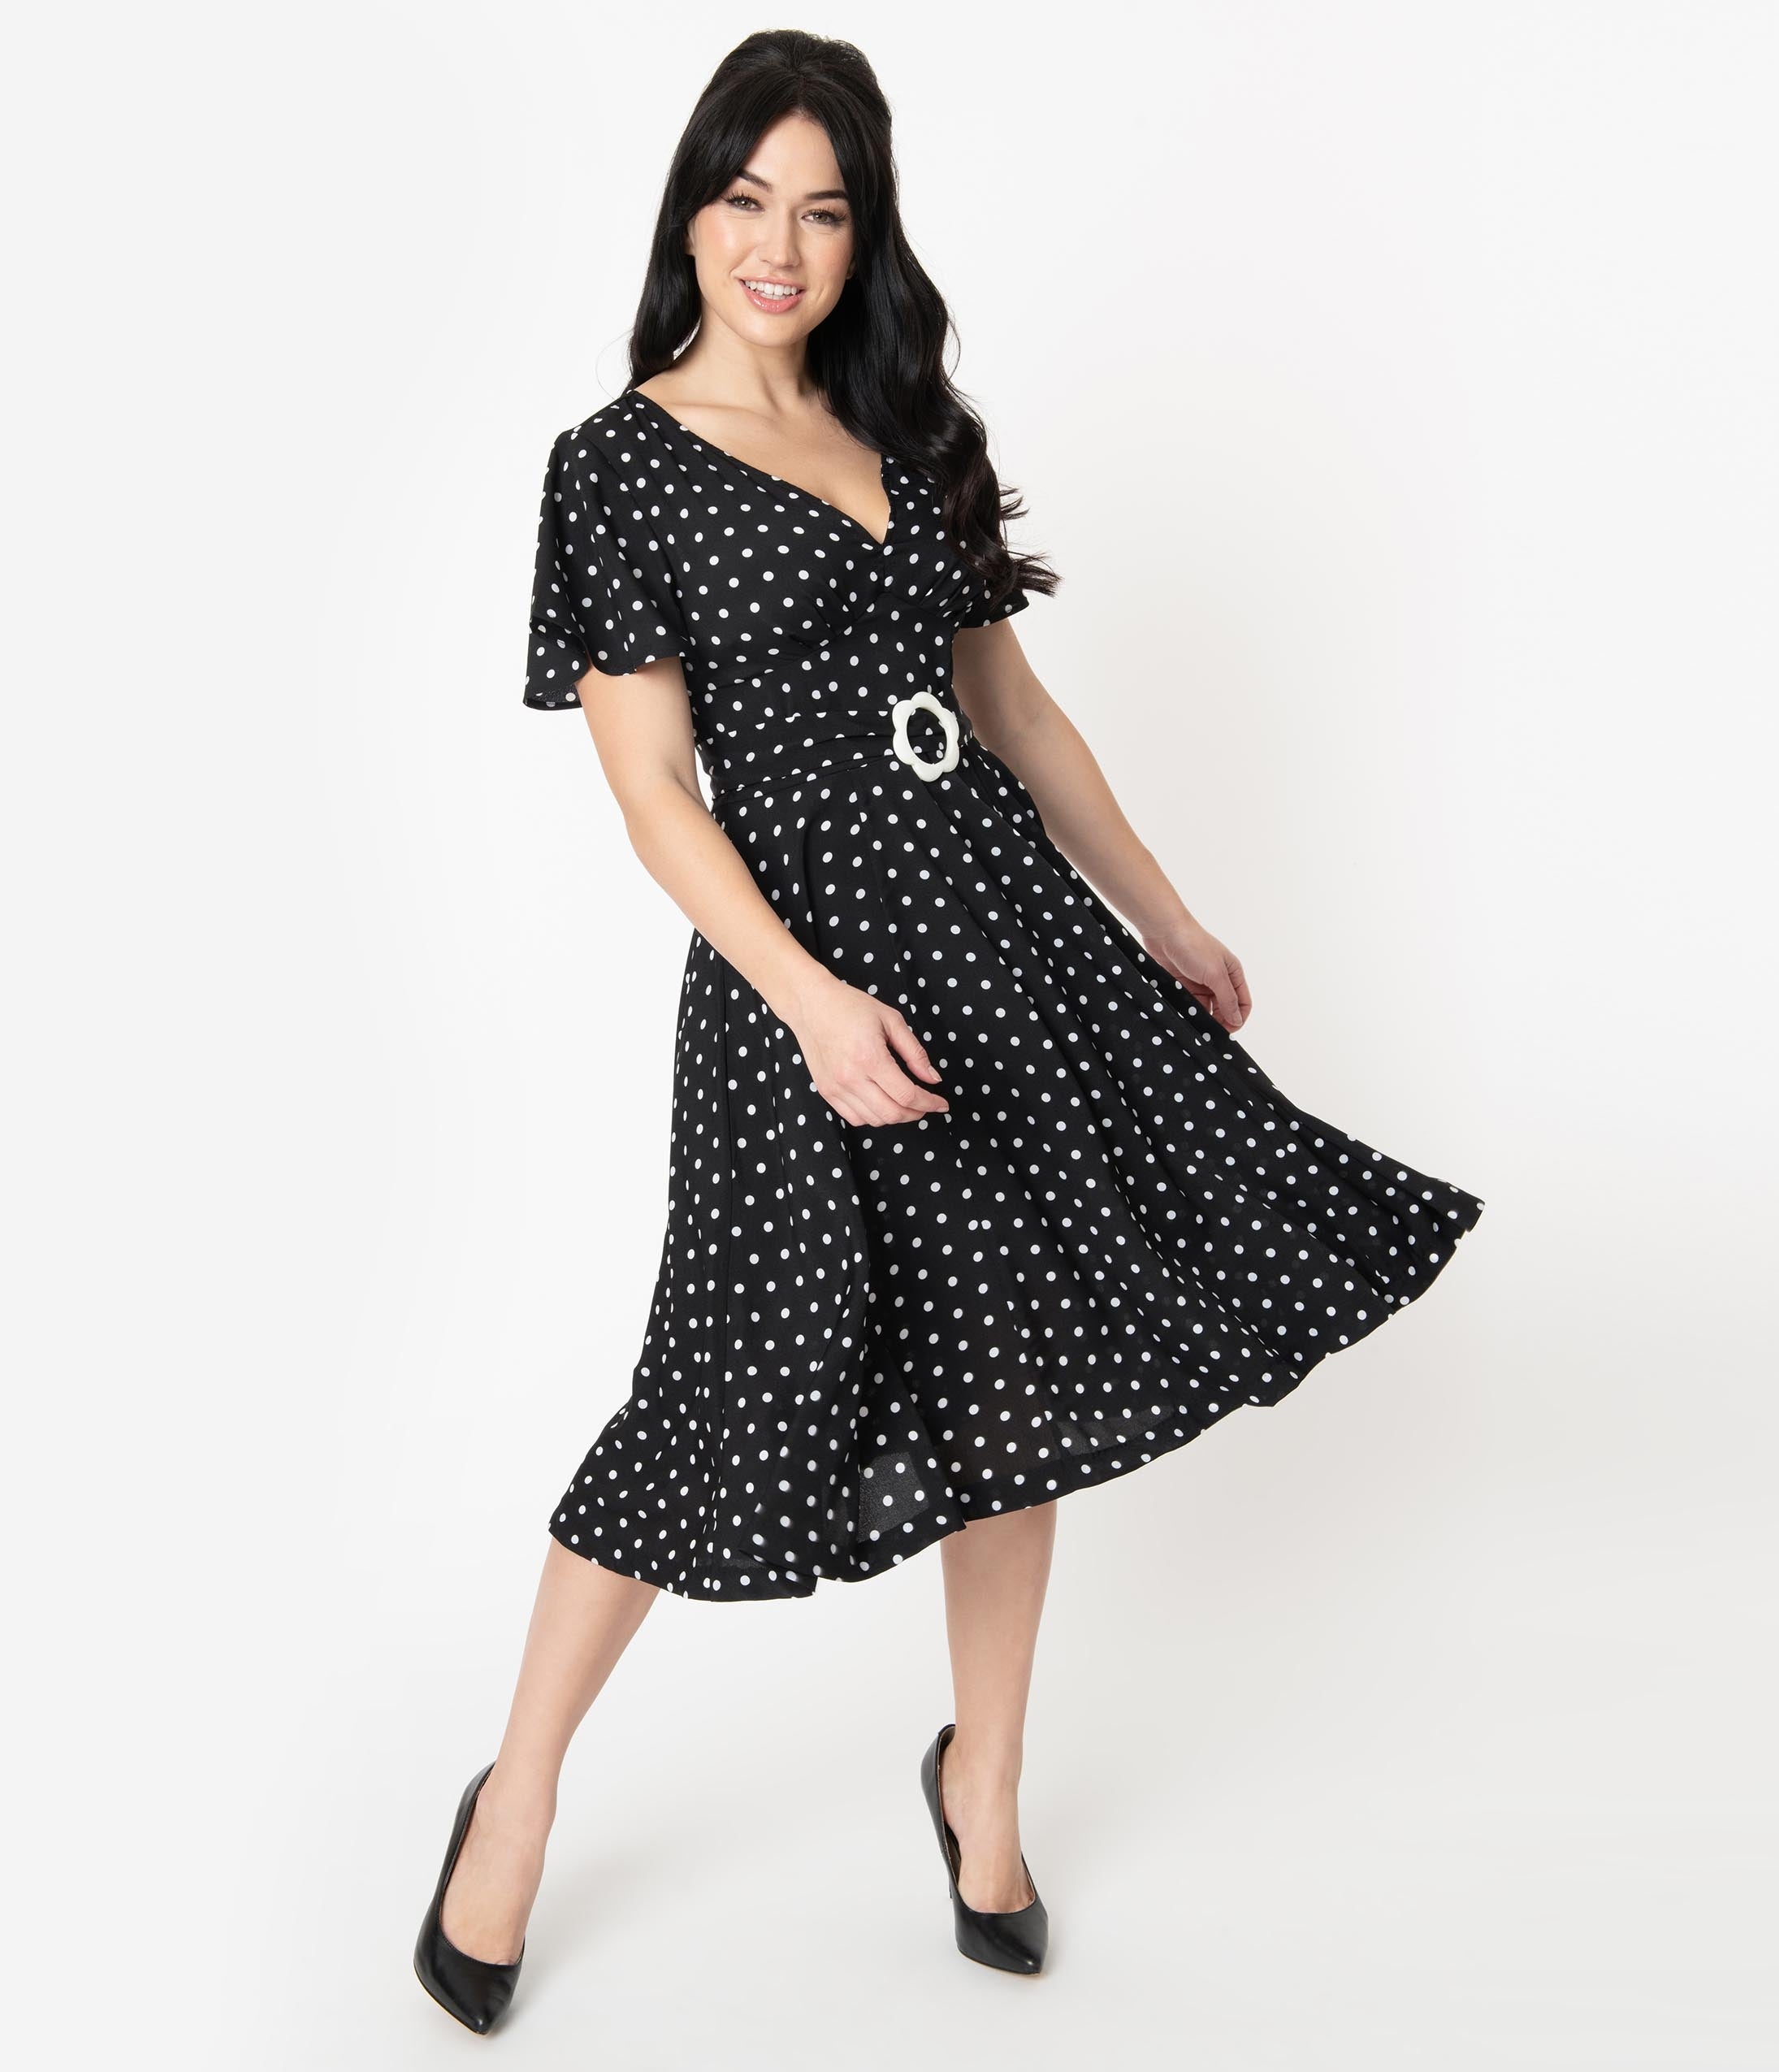 1940s Dress Styles Unique Vintage 1940S Black  White Polka Dot Kay Swing Dress $68.00 AT vintagedancer.com